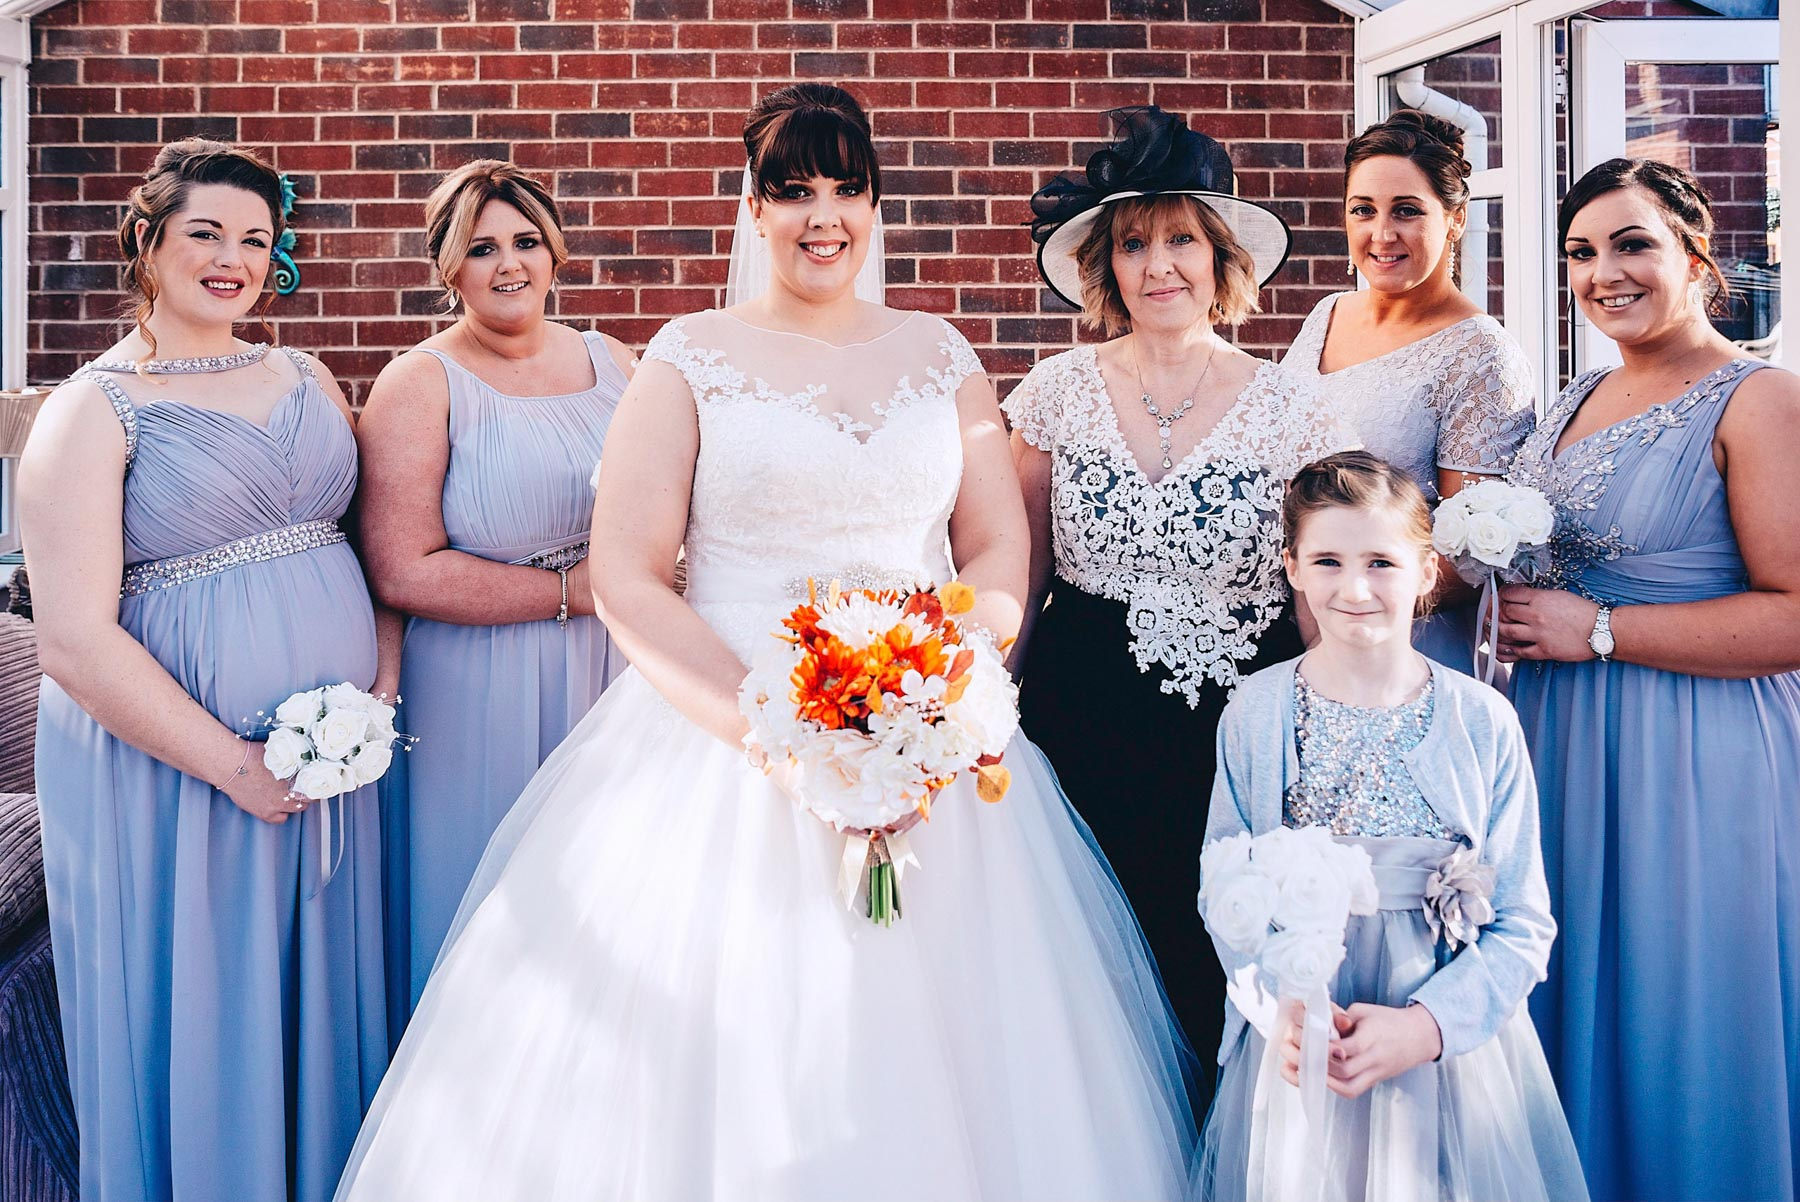 Wedding party pose for photo